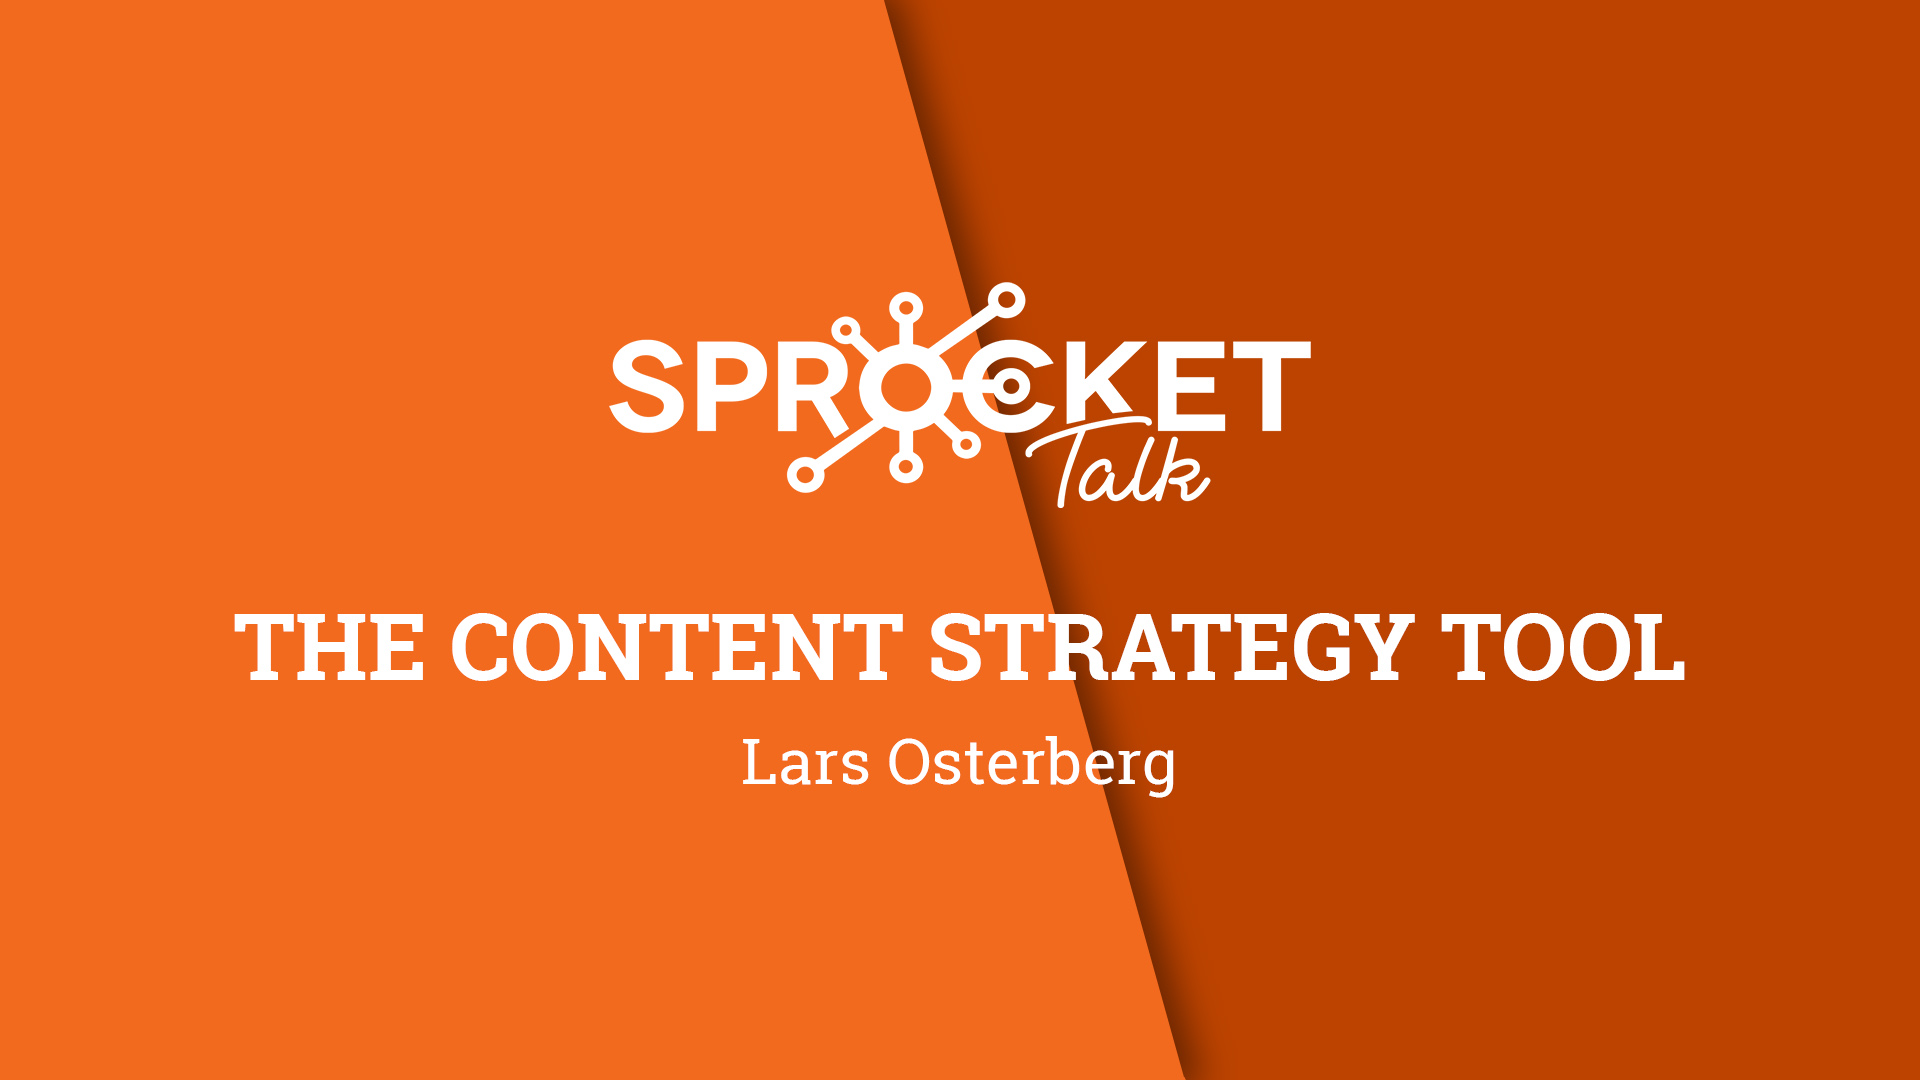 Lars Osterberg | Content Strategy